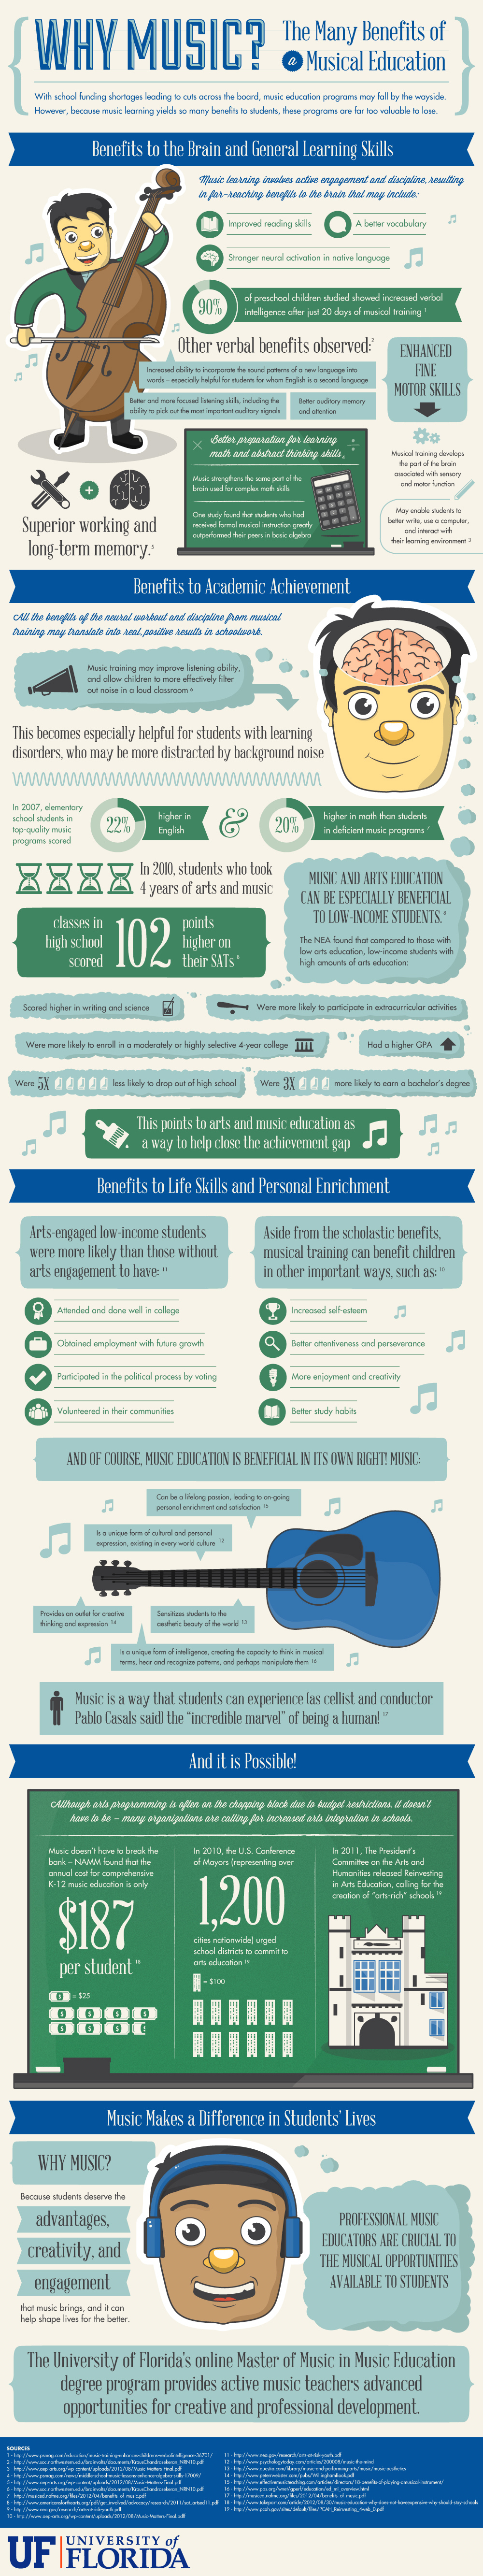 WHY TEACH MUSIC - courtesy of the University of Florida